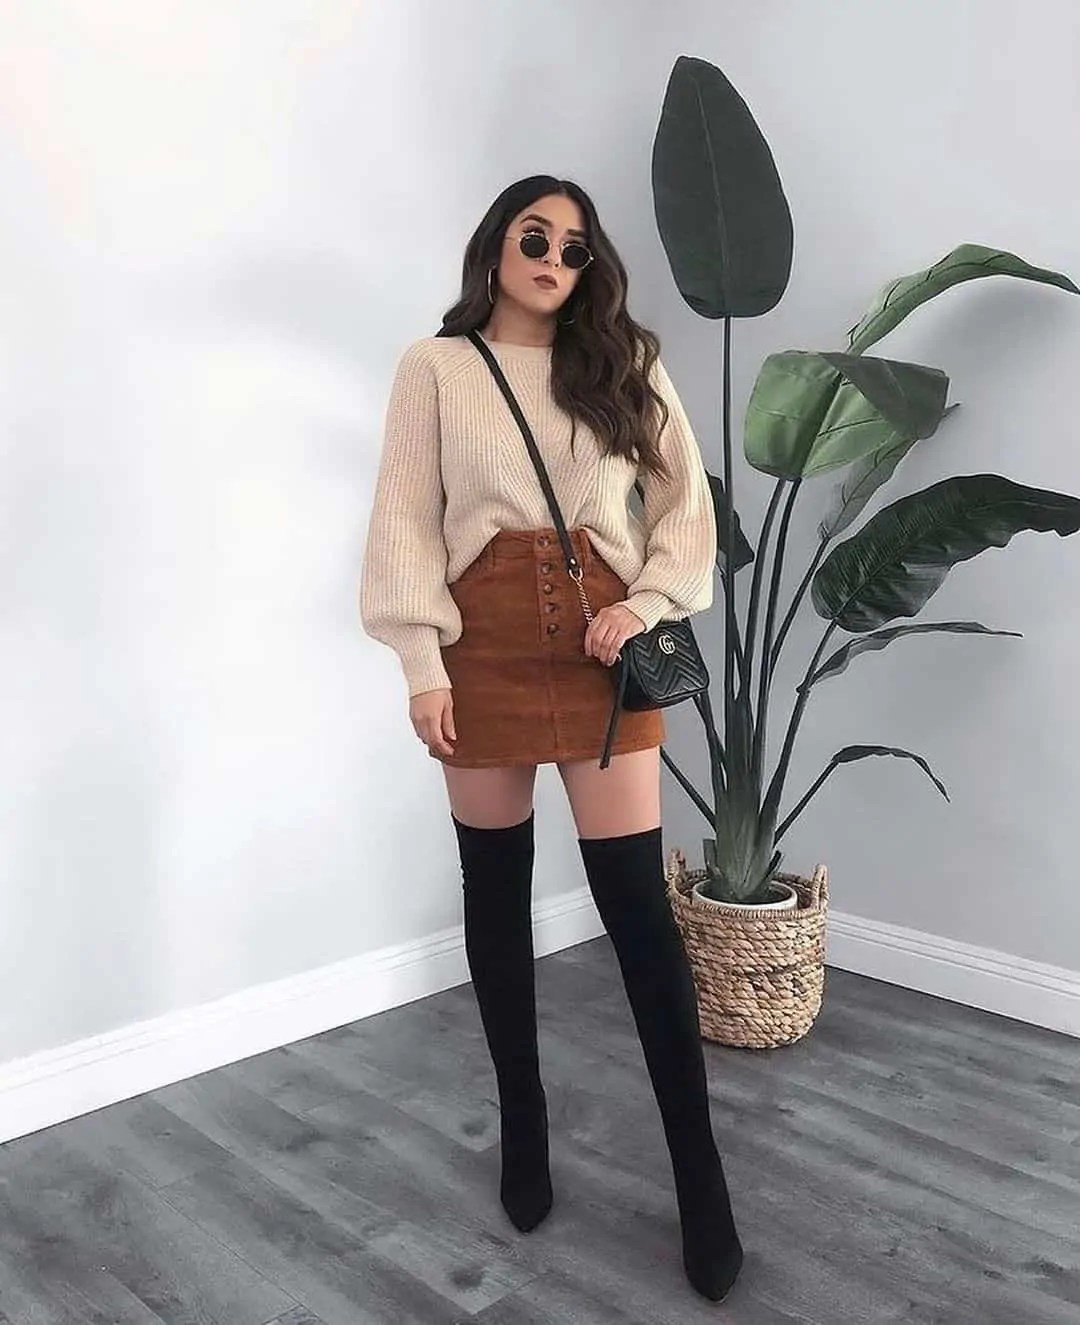 100+ fashion inspo outfits that you have to see no matter what your style is 123